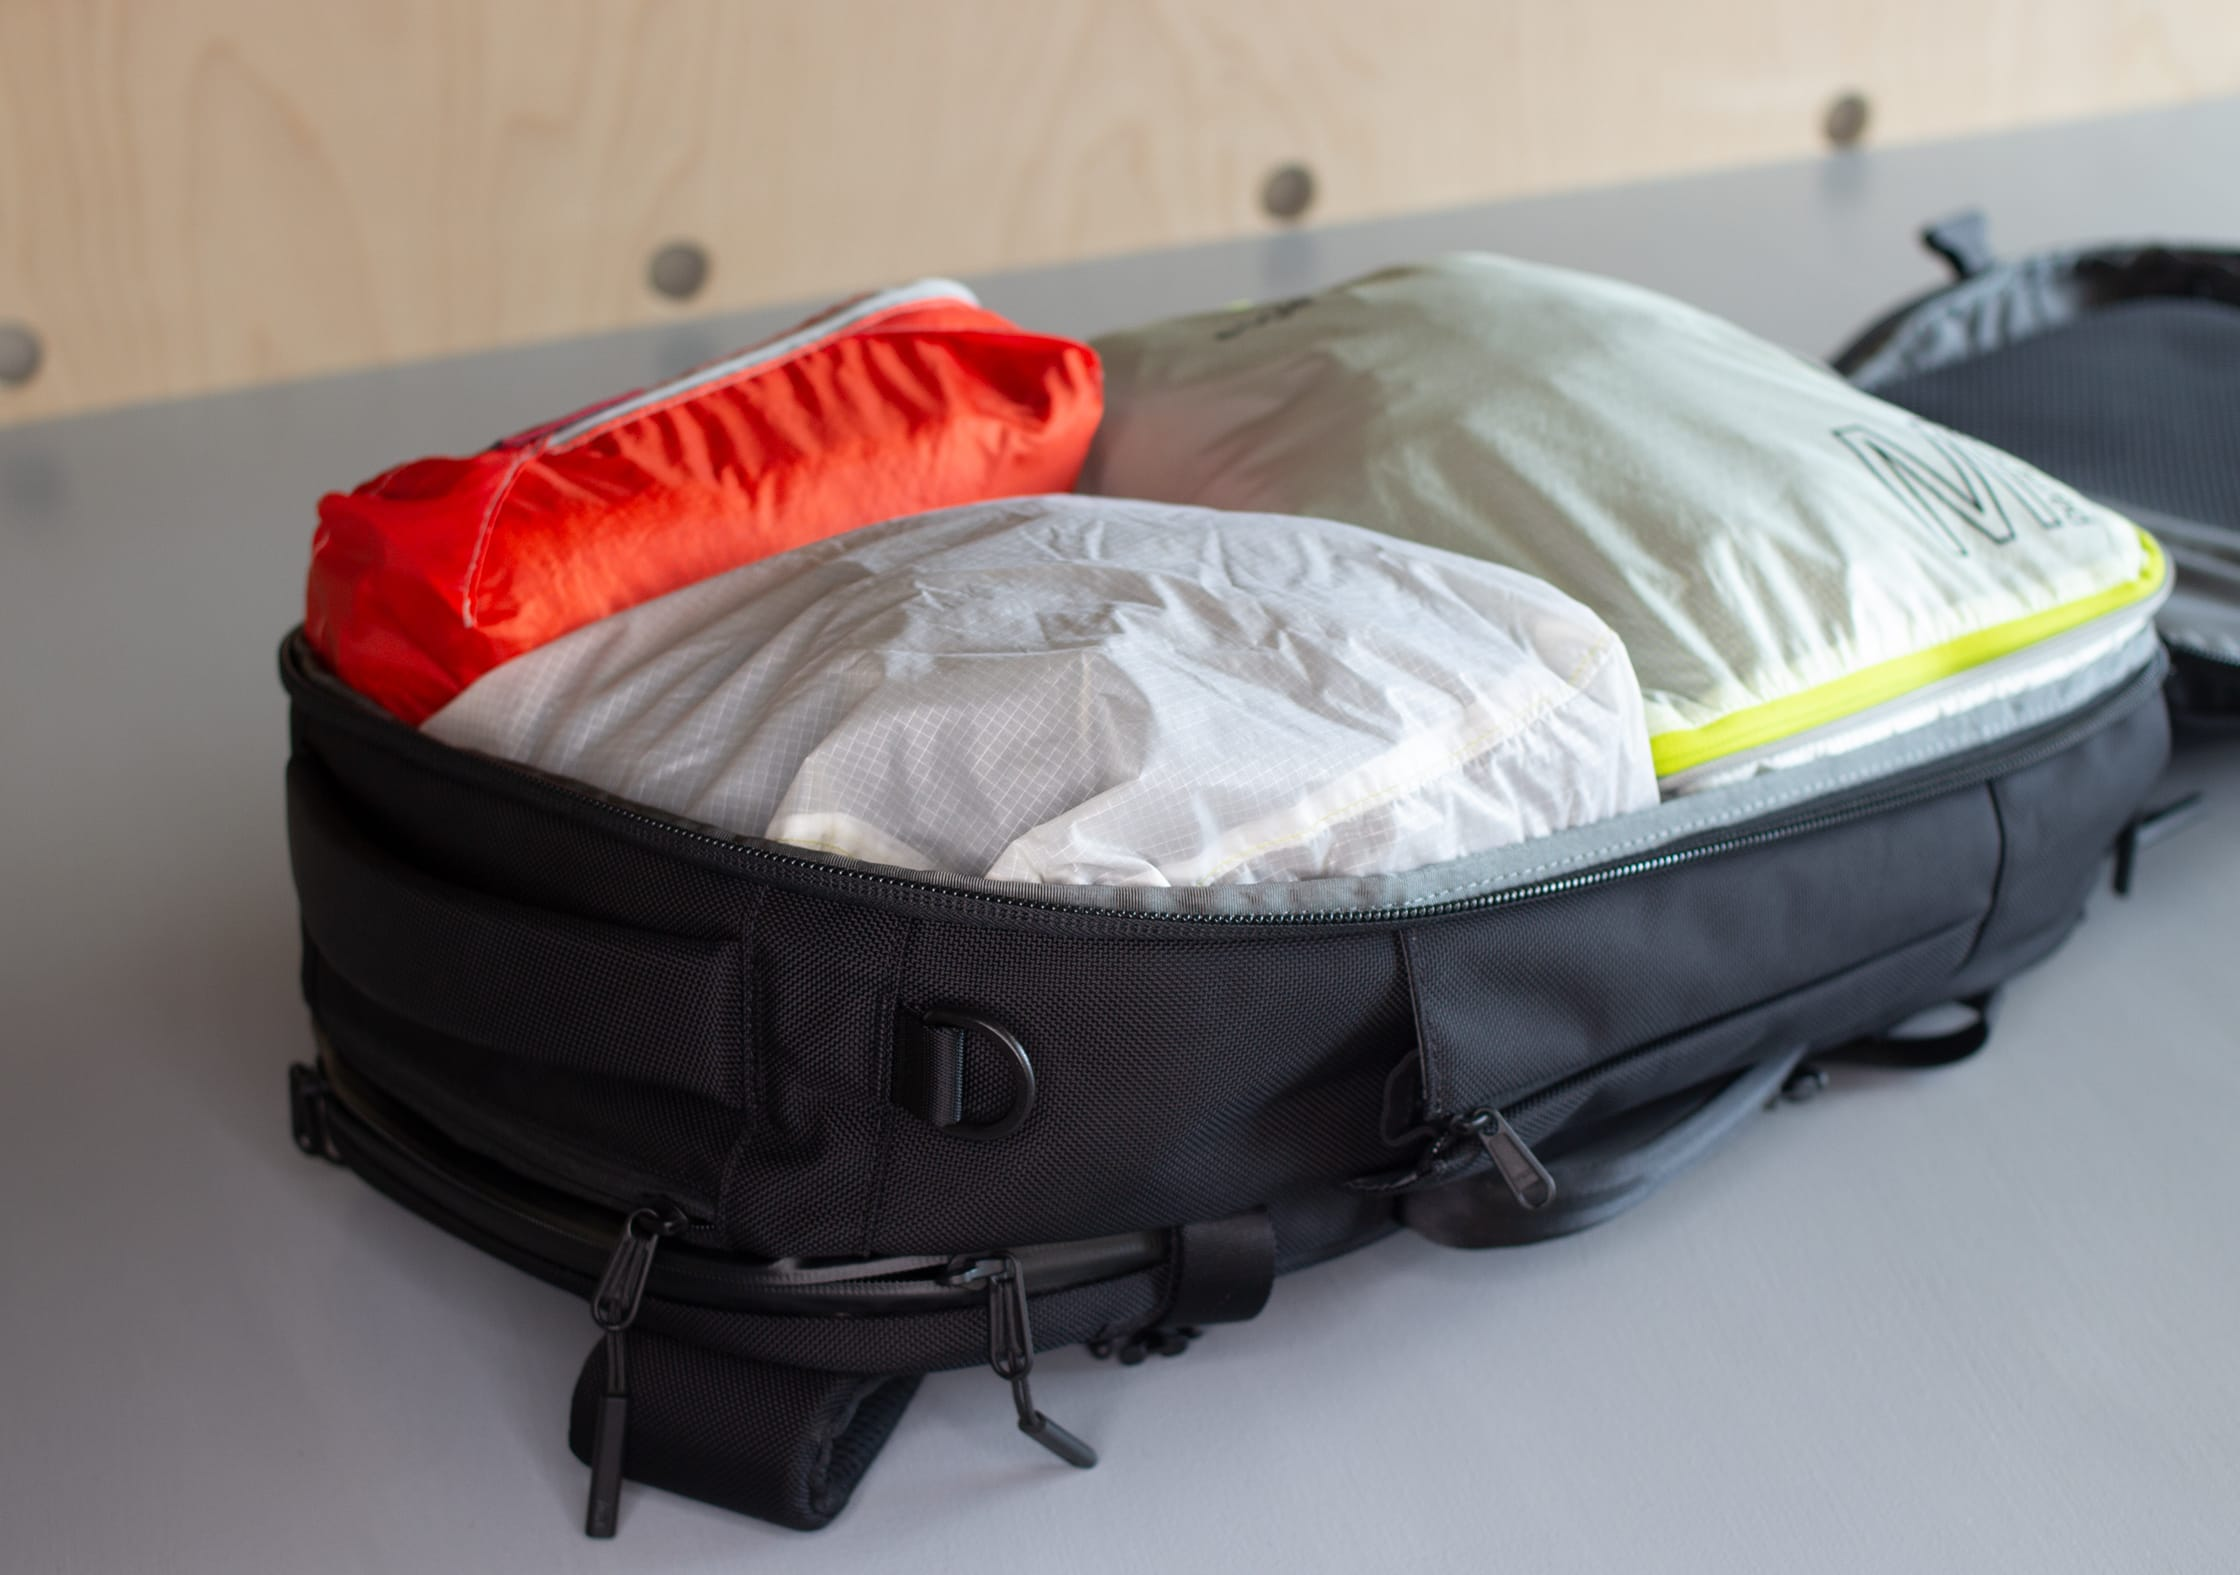 Aer Travel Pack 2 Main Compartment